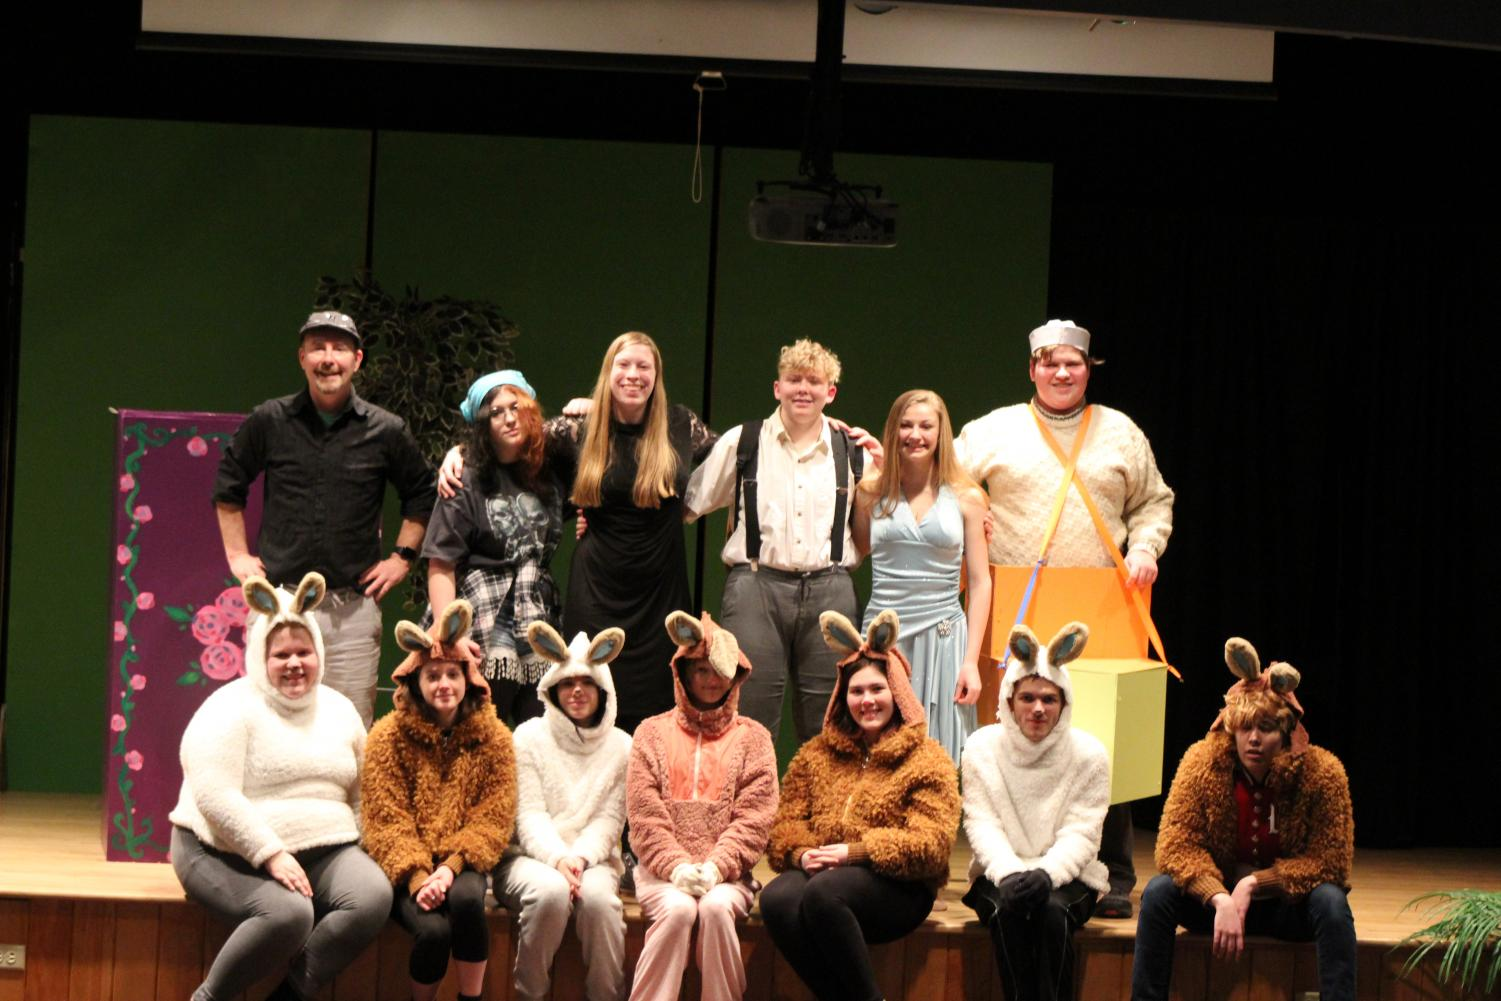 Live theater comes to Craig!